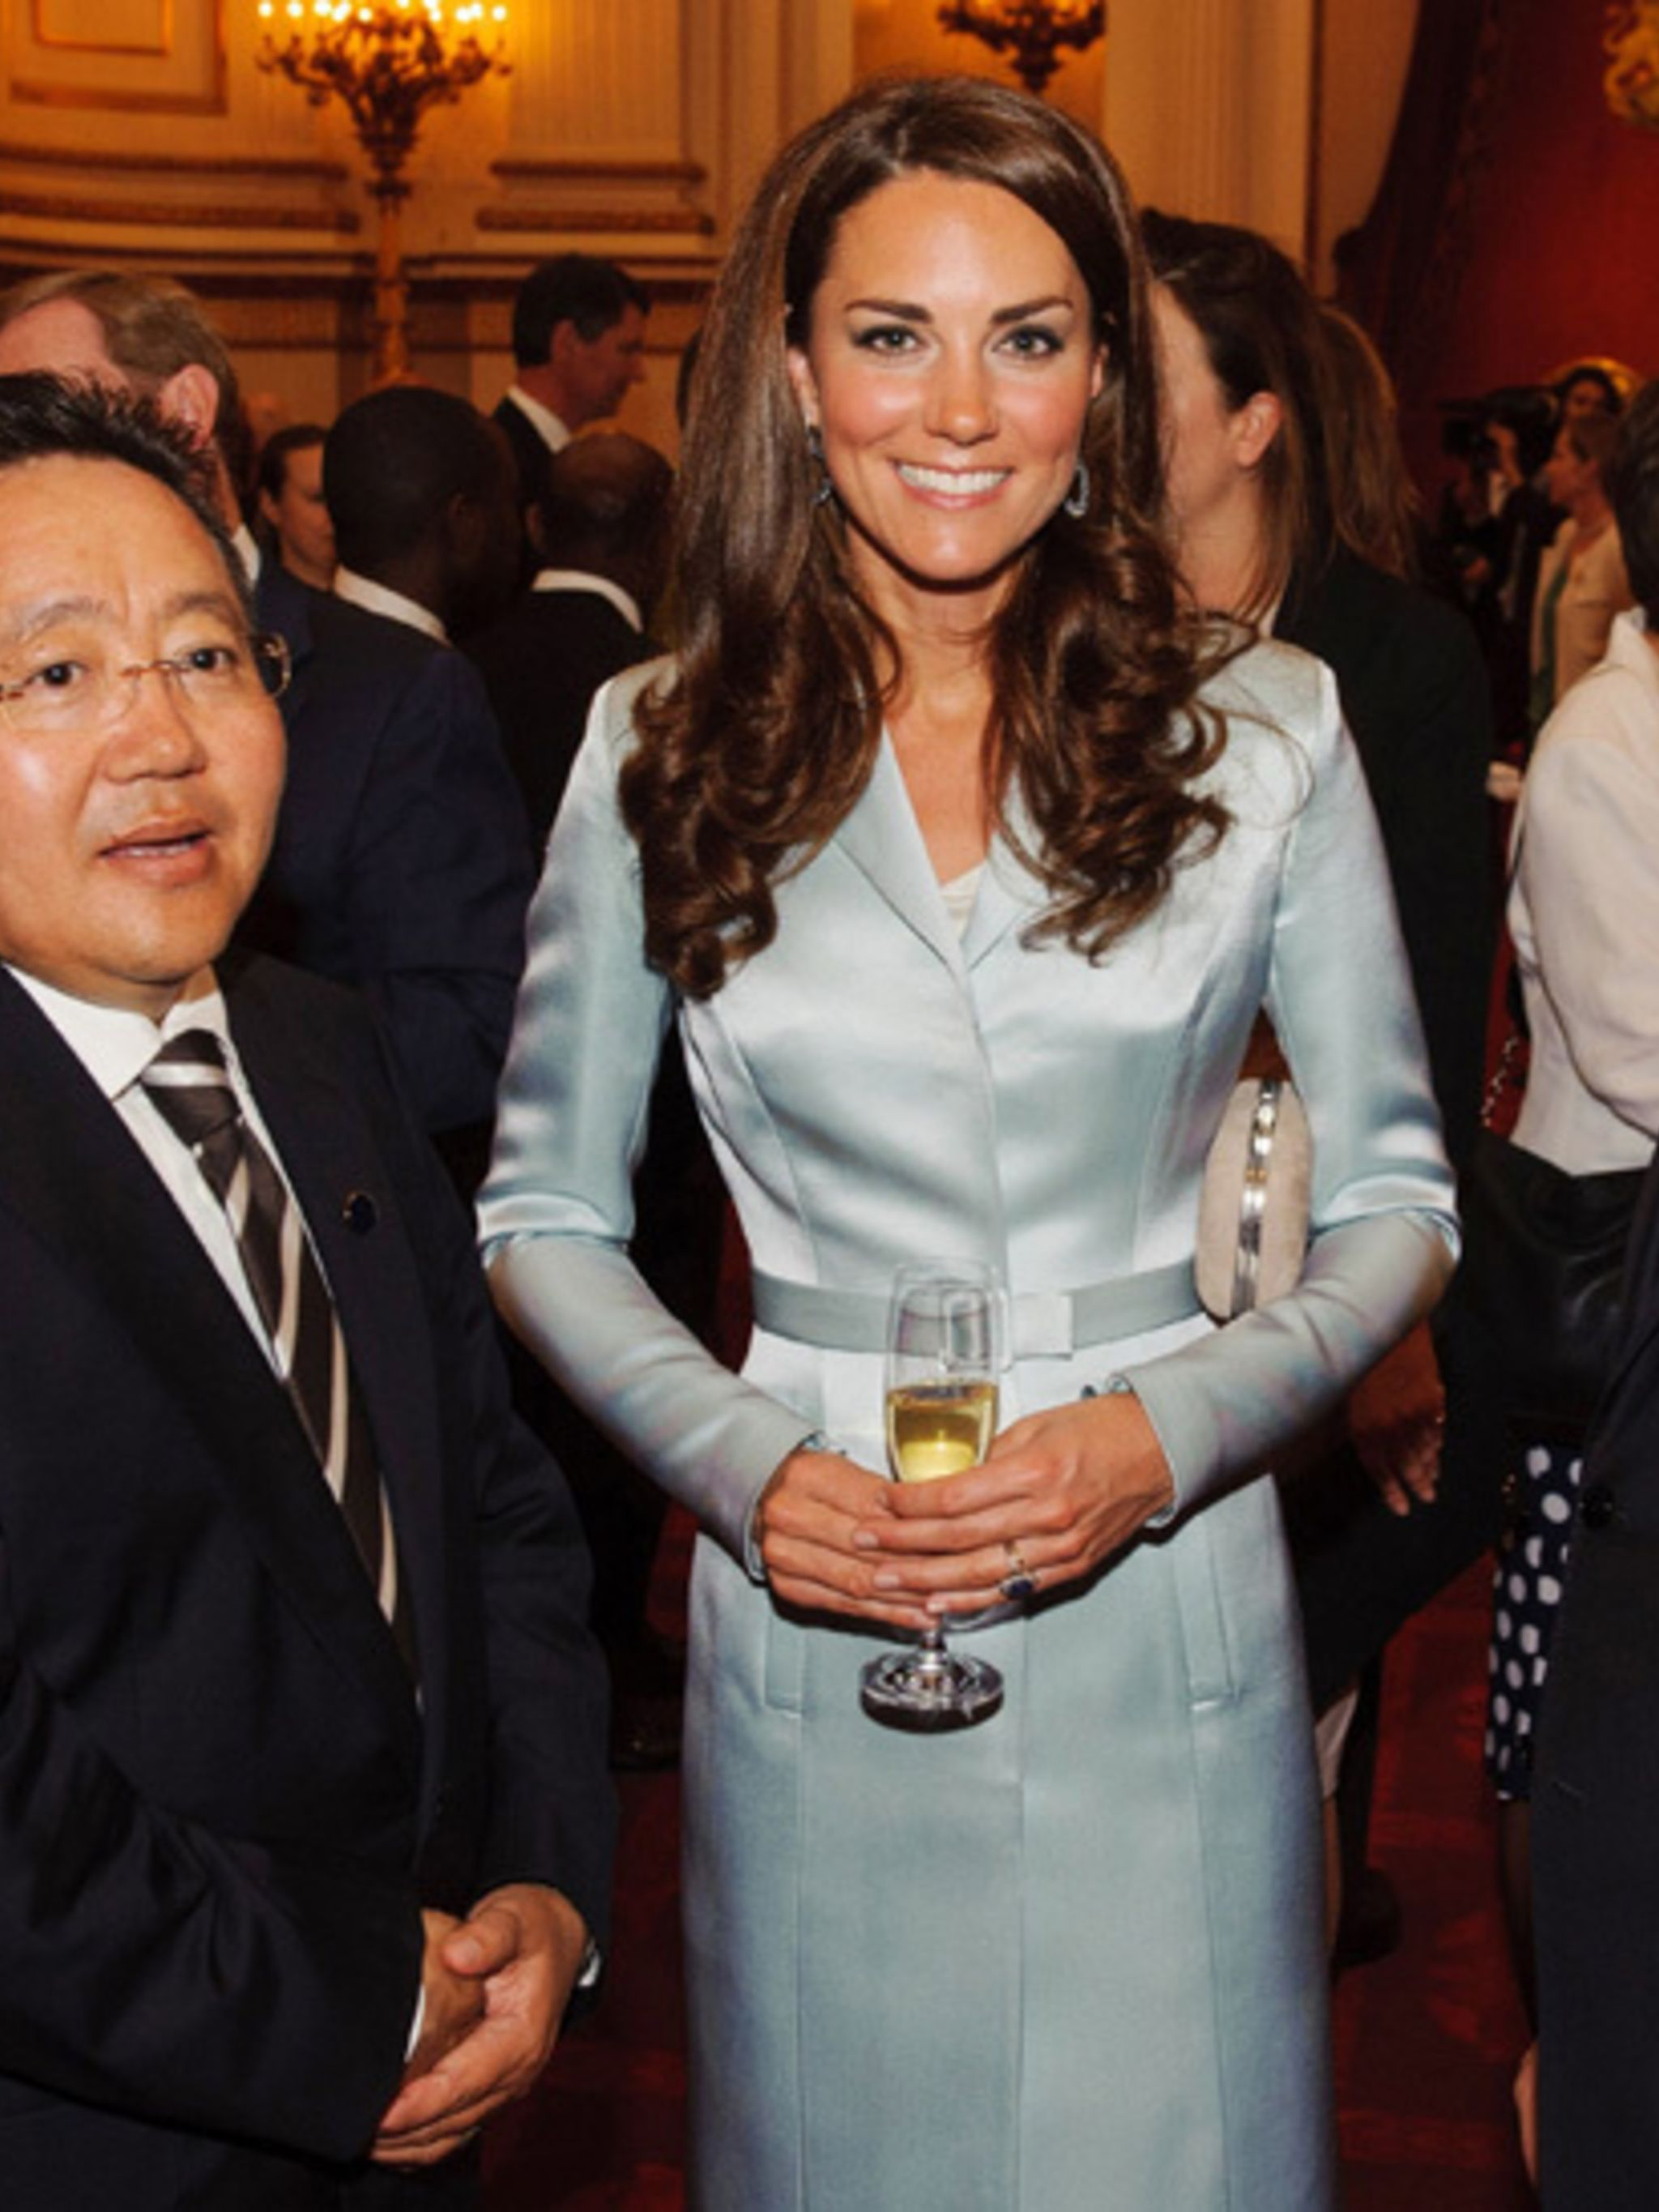 <p>Kate Middleton wearing Christopher Kane for the Olympics opening ceremony reception at Buckingham palace, July 2012.</p>